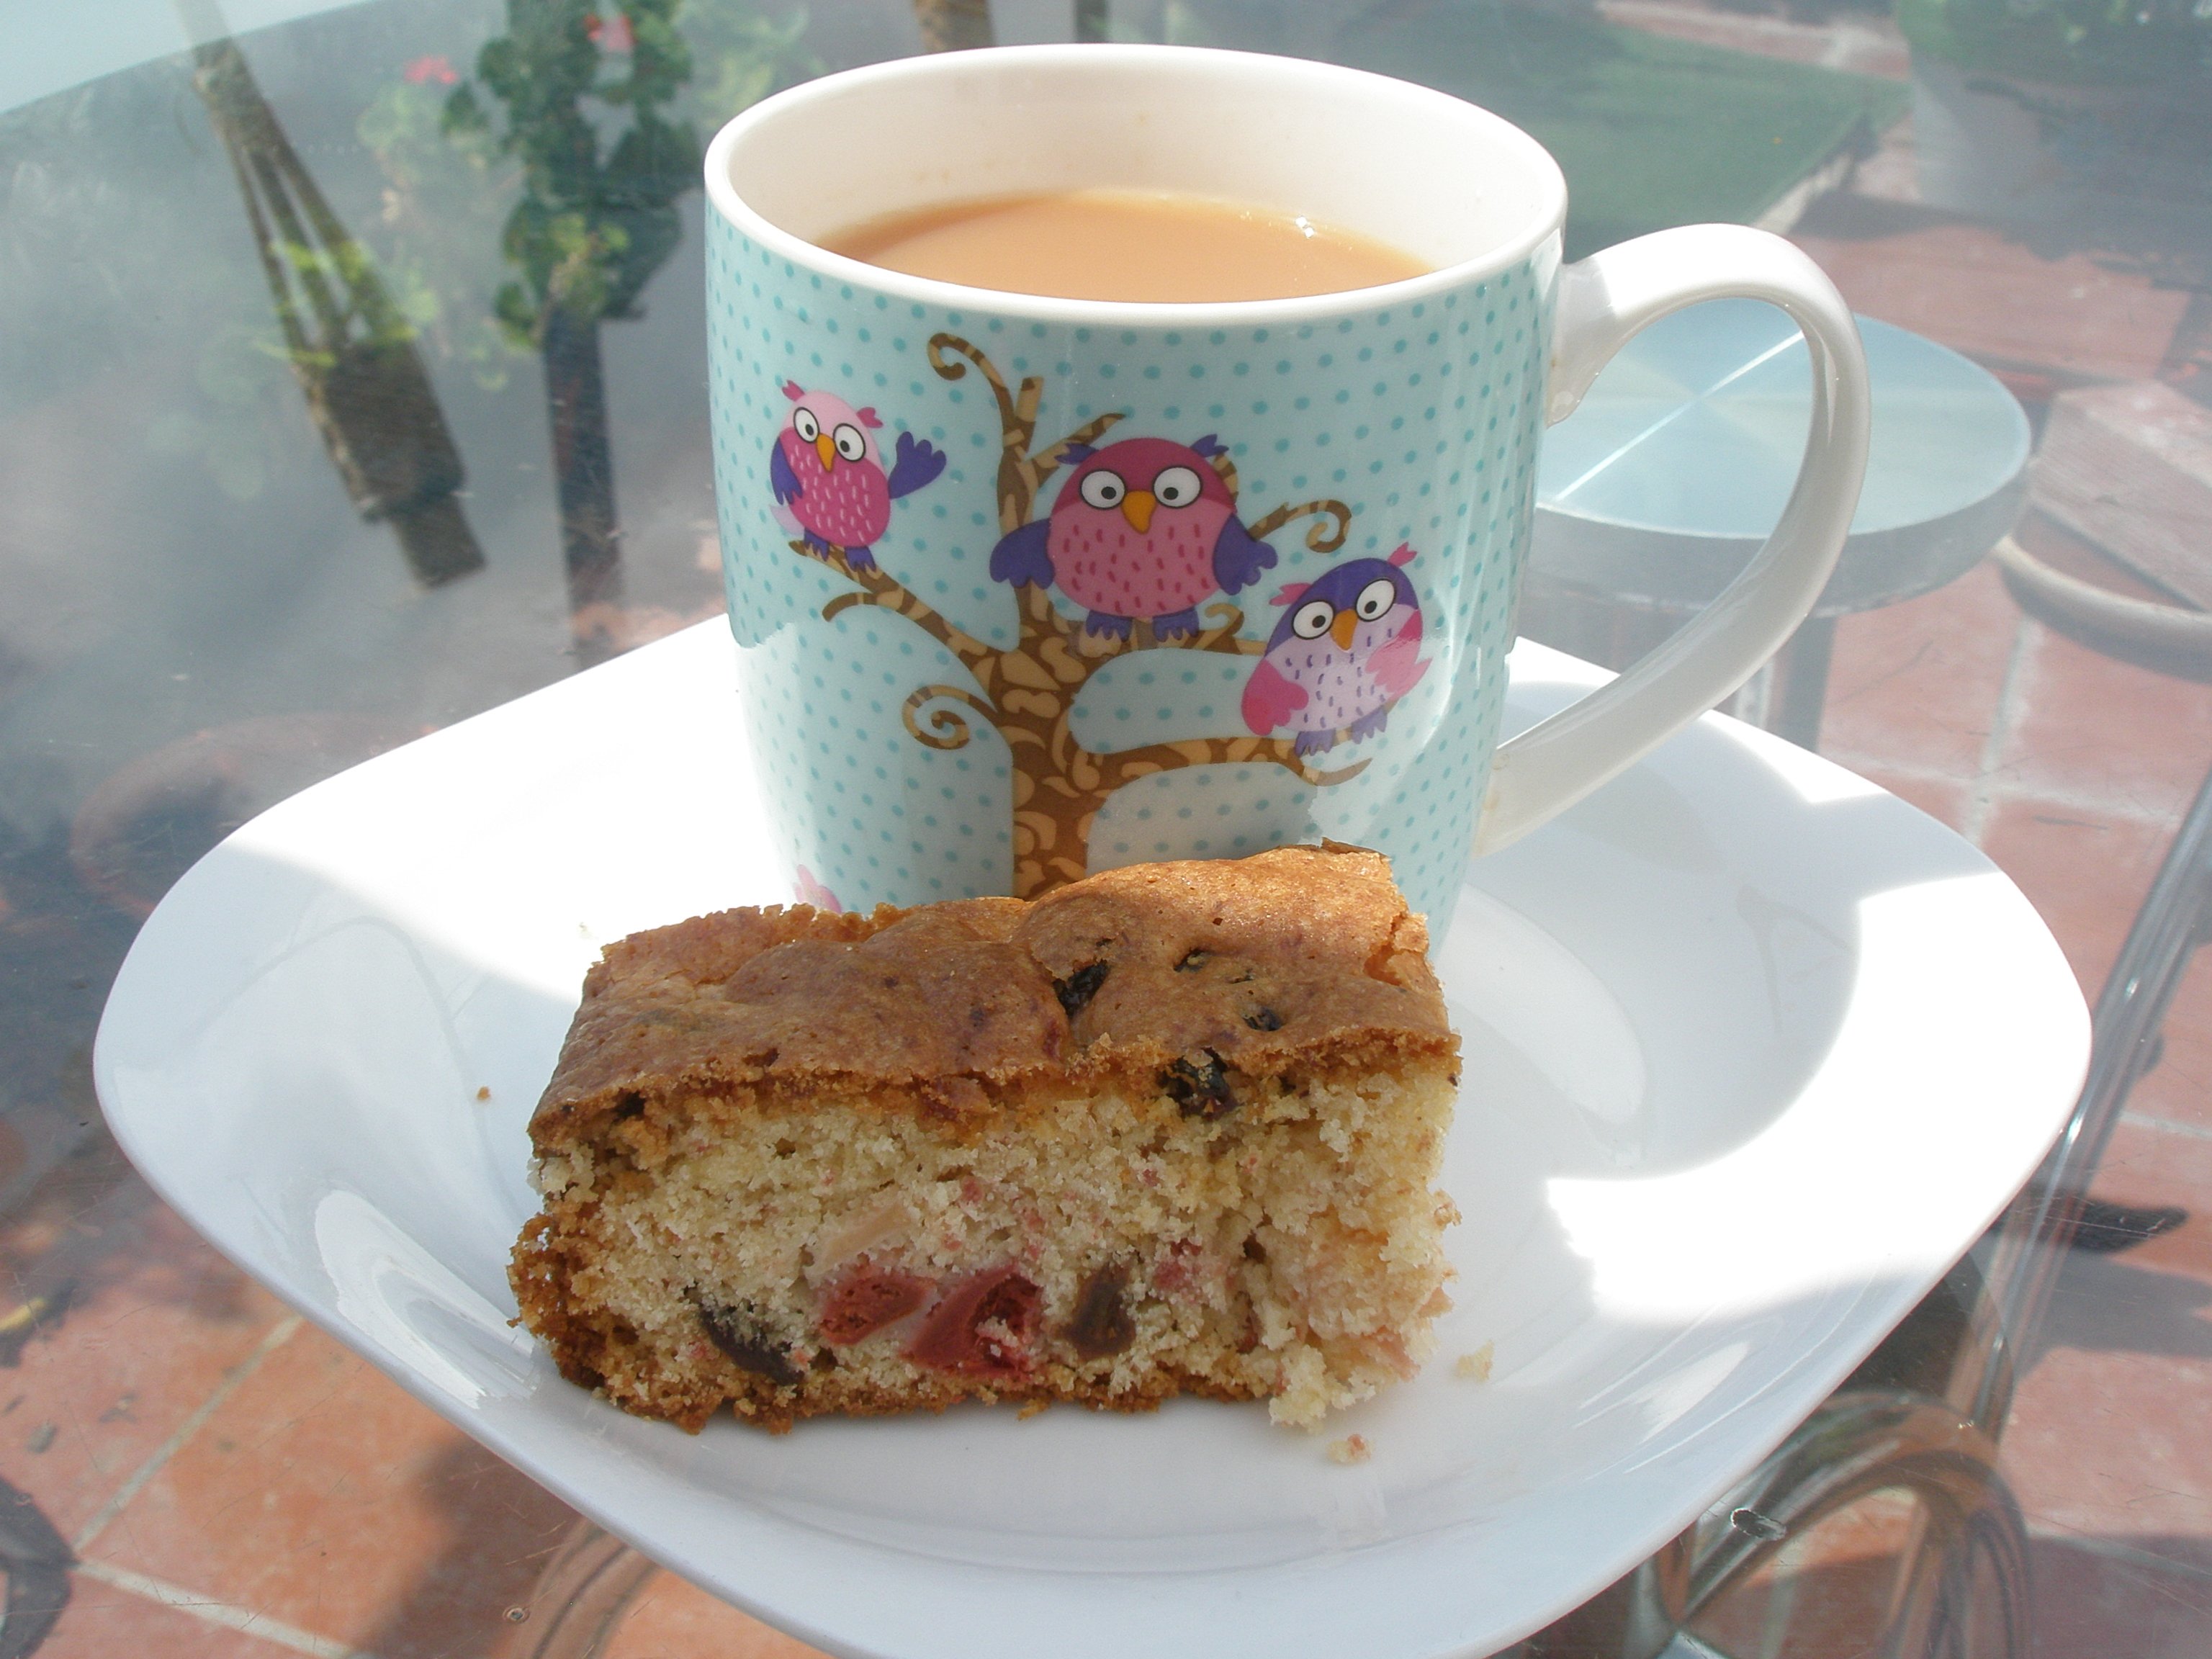 cup of tea and a slice of cake. What could be nicer?